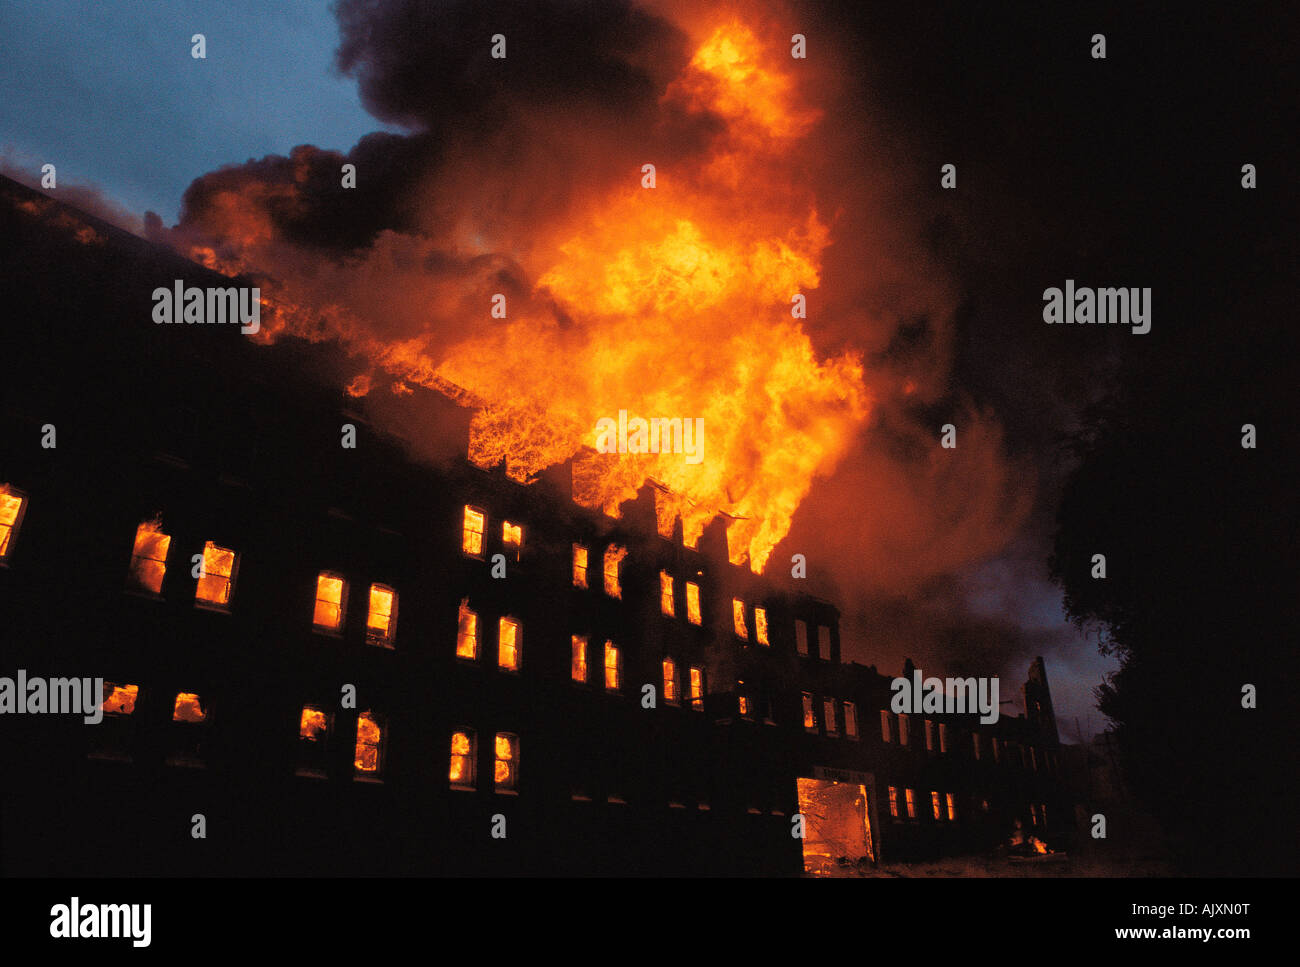 Accident & disaster. Fire. Building. Warehouse factory fire. Redfern. Sydney. Australia. 1980s. - Stock Image